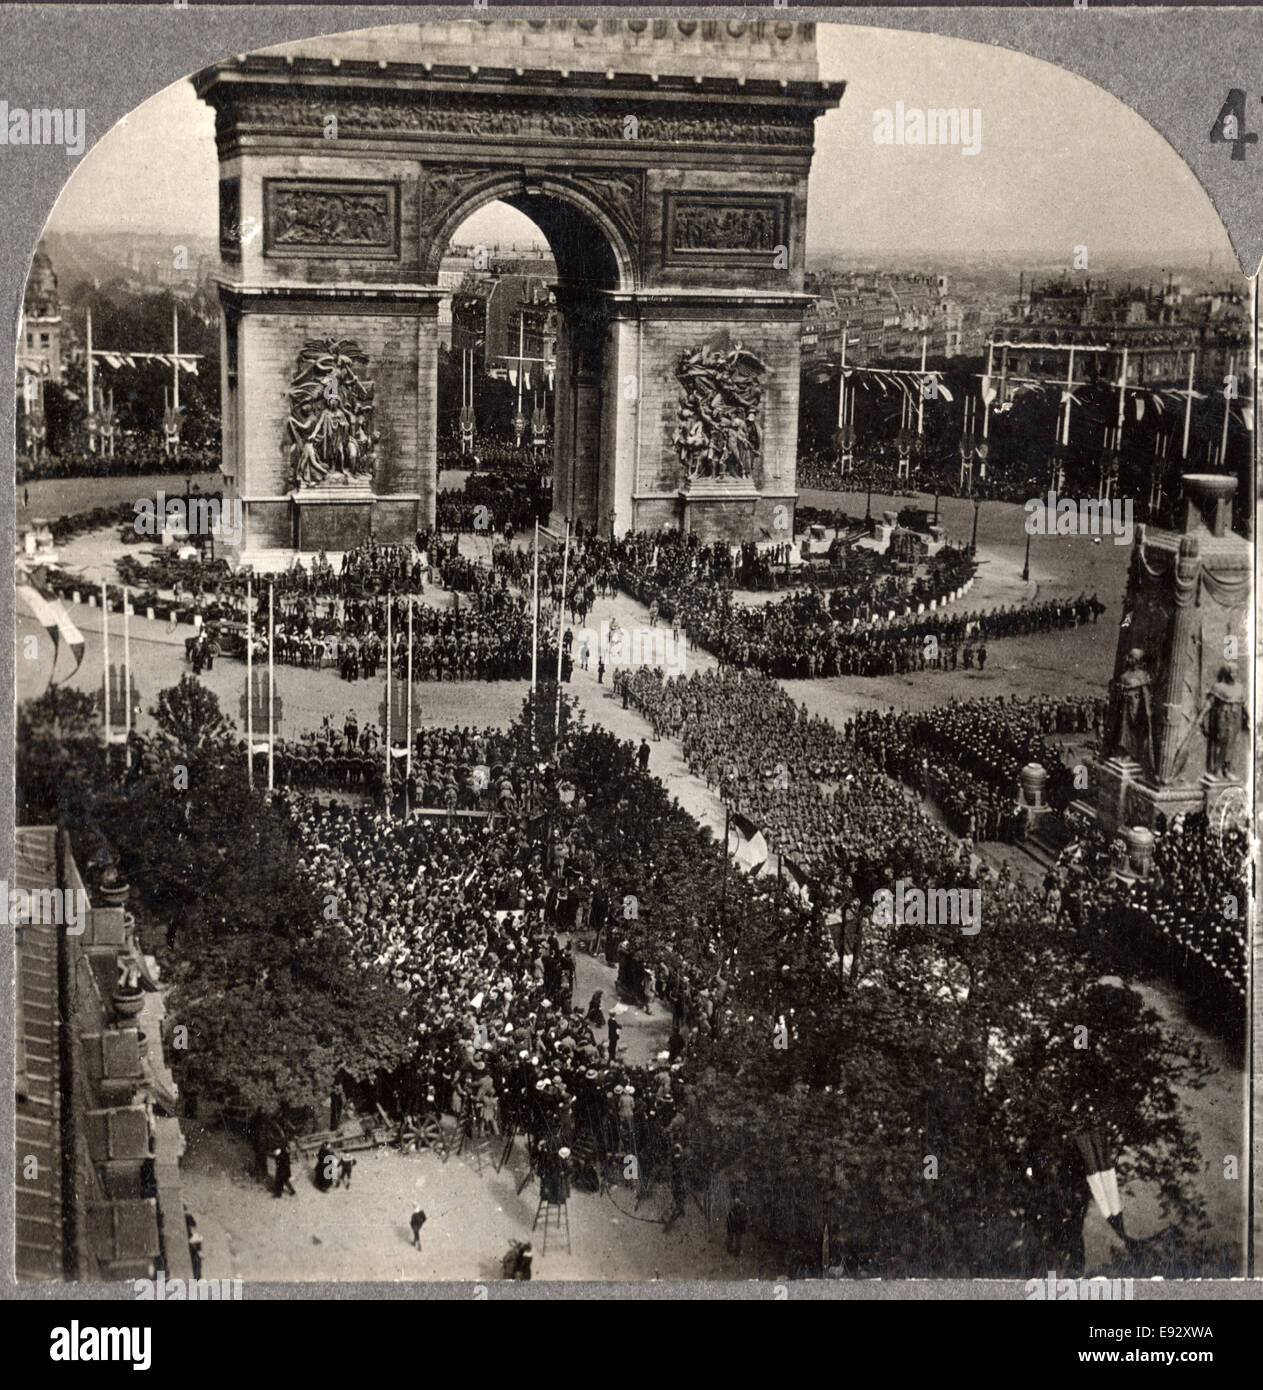 WWI Victory Day Celebration,  Arch de Triumph, Avenue des Champs-Eiysees, Paris, France, Single Image of Stereo Stock Photo